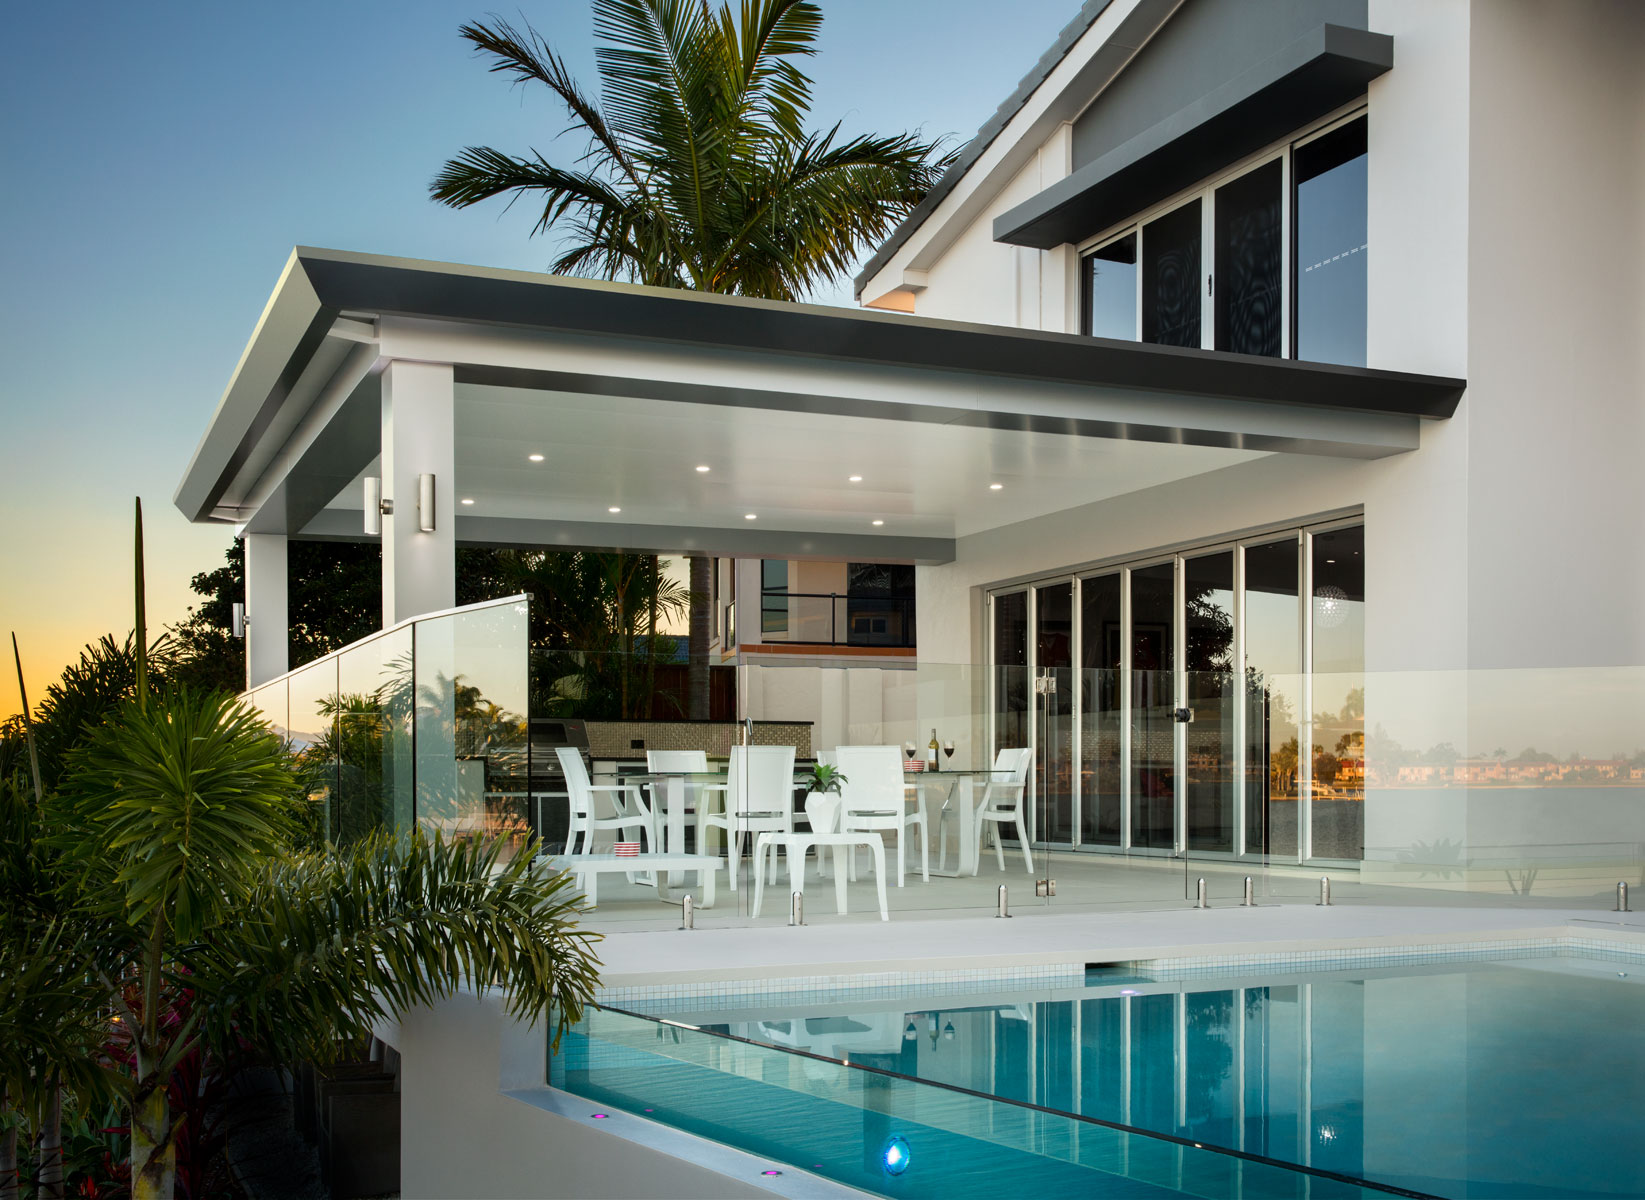 Pavilion - Outdoor Living Patio by Stratco – Architectural D